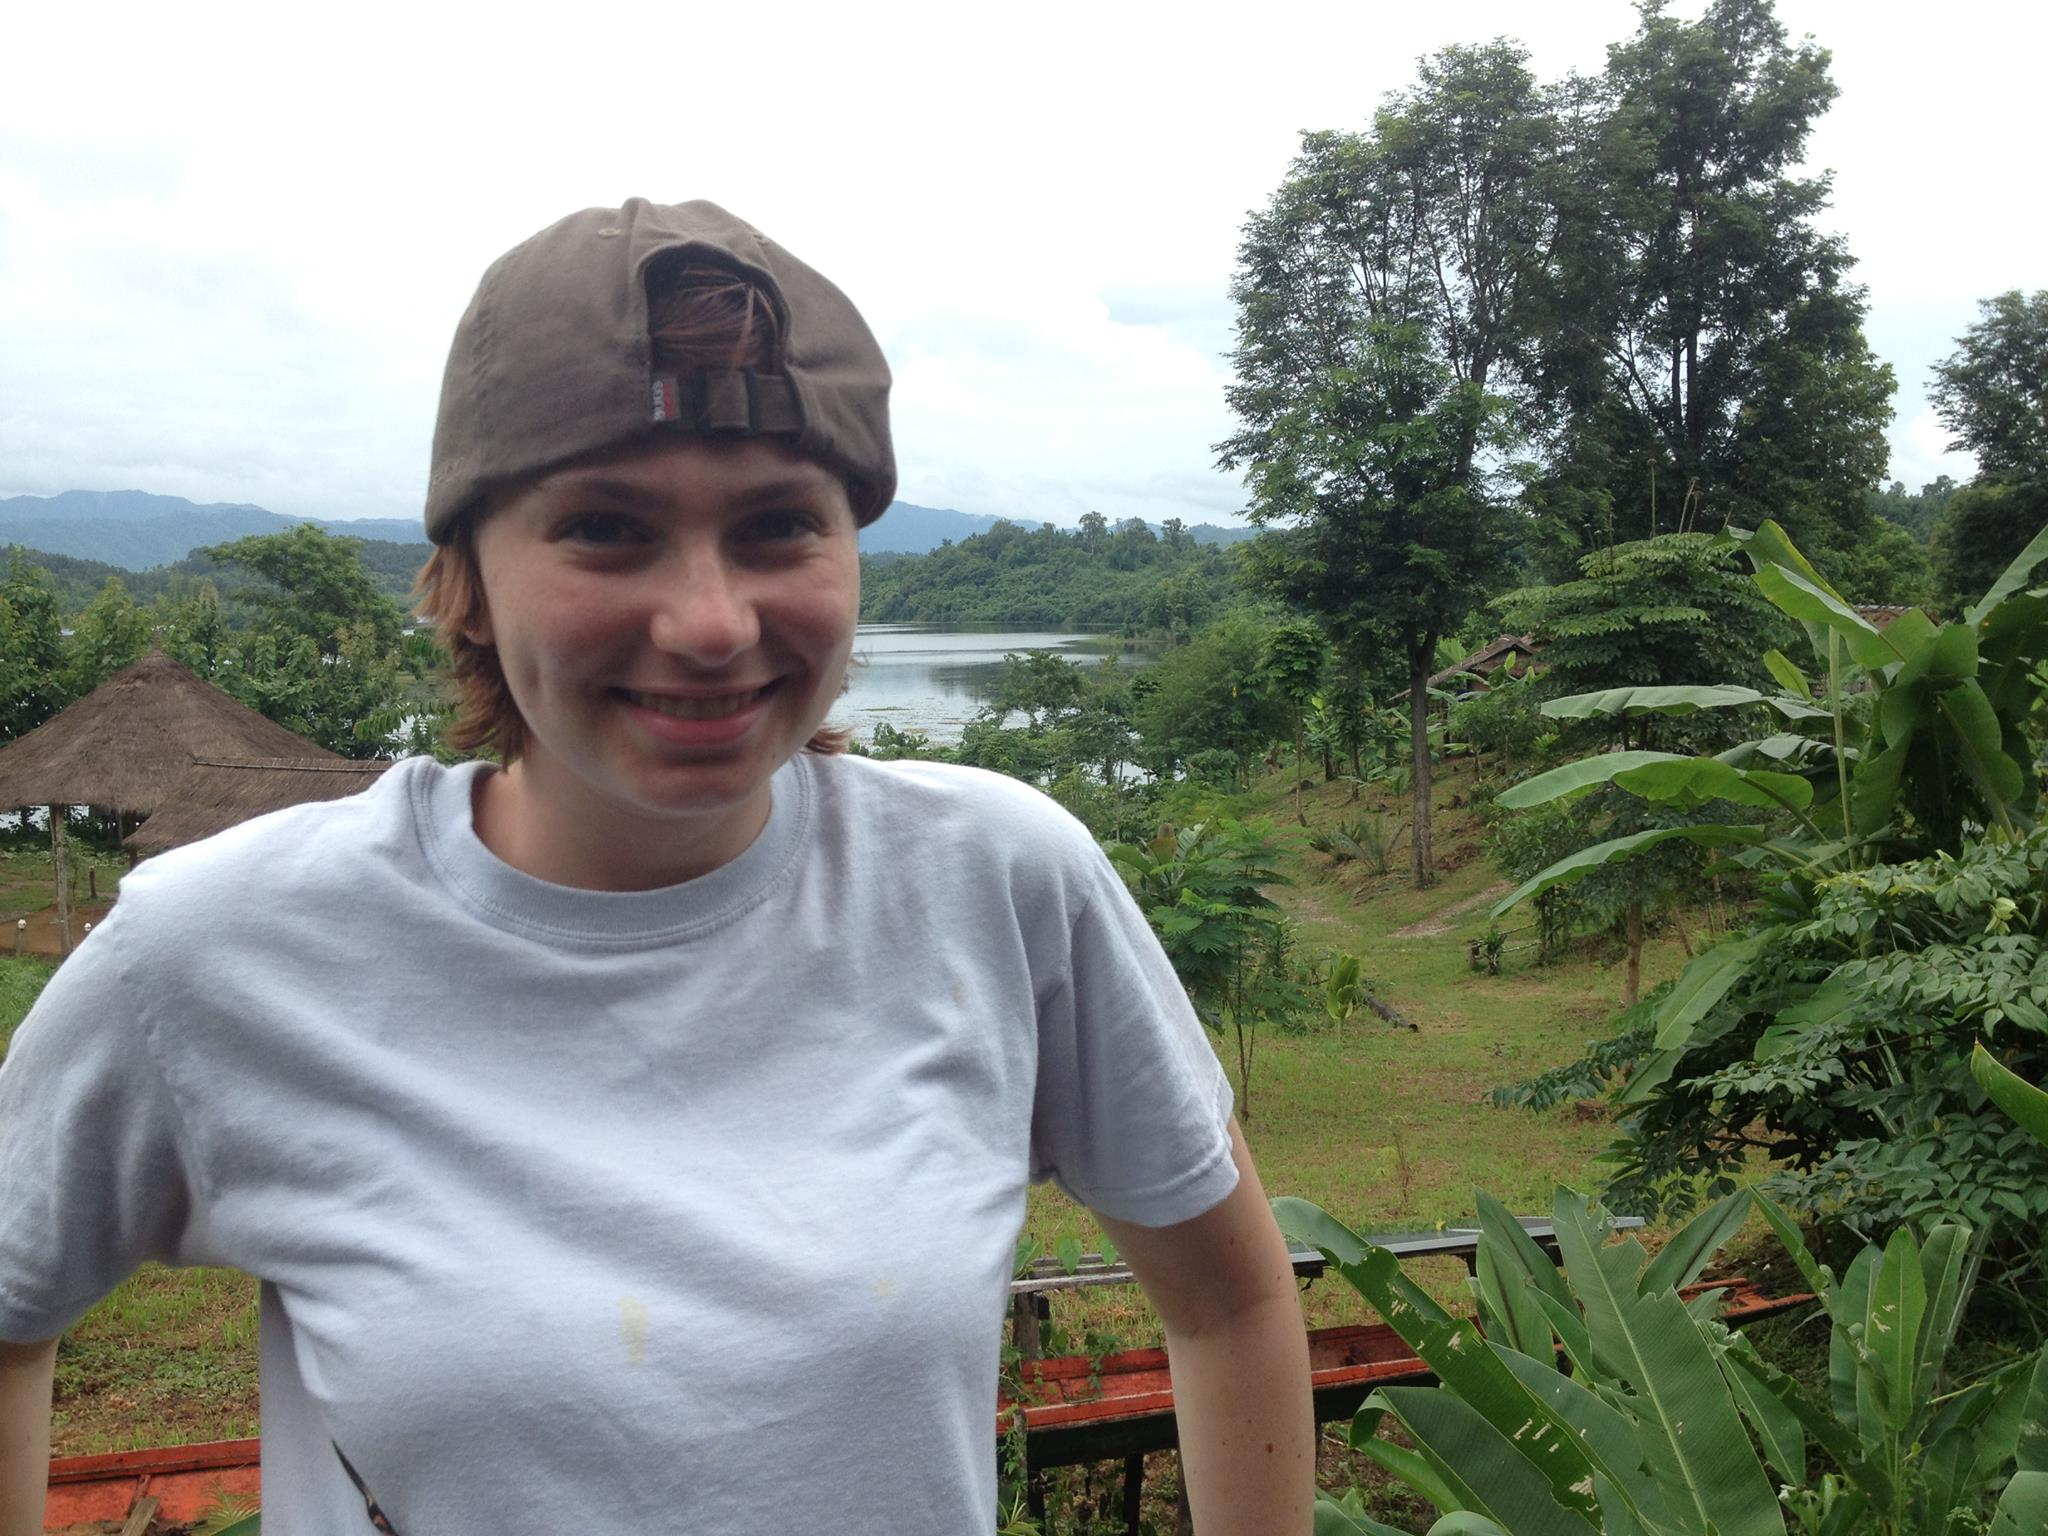 McKenna Damato - Asian Elephant Veterinary Course in Laos